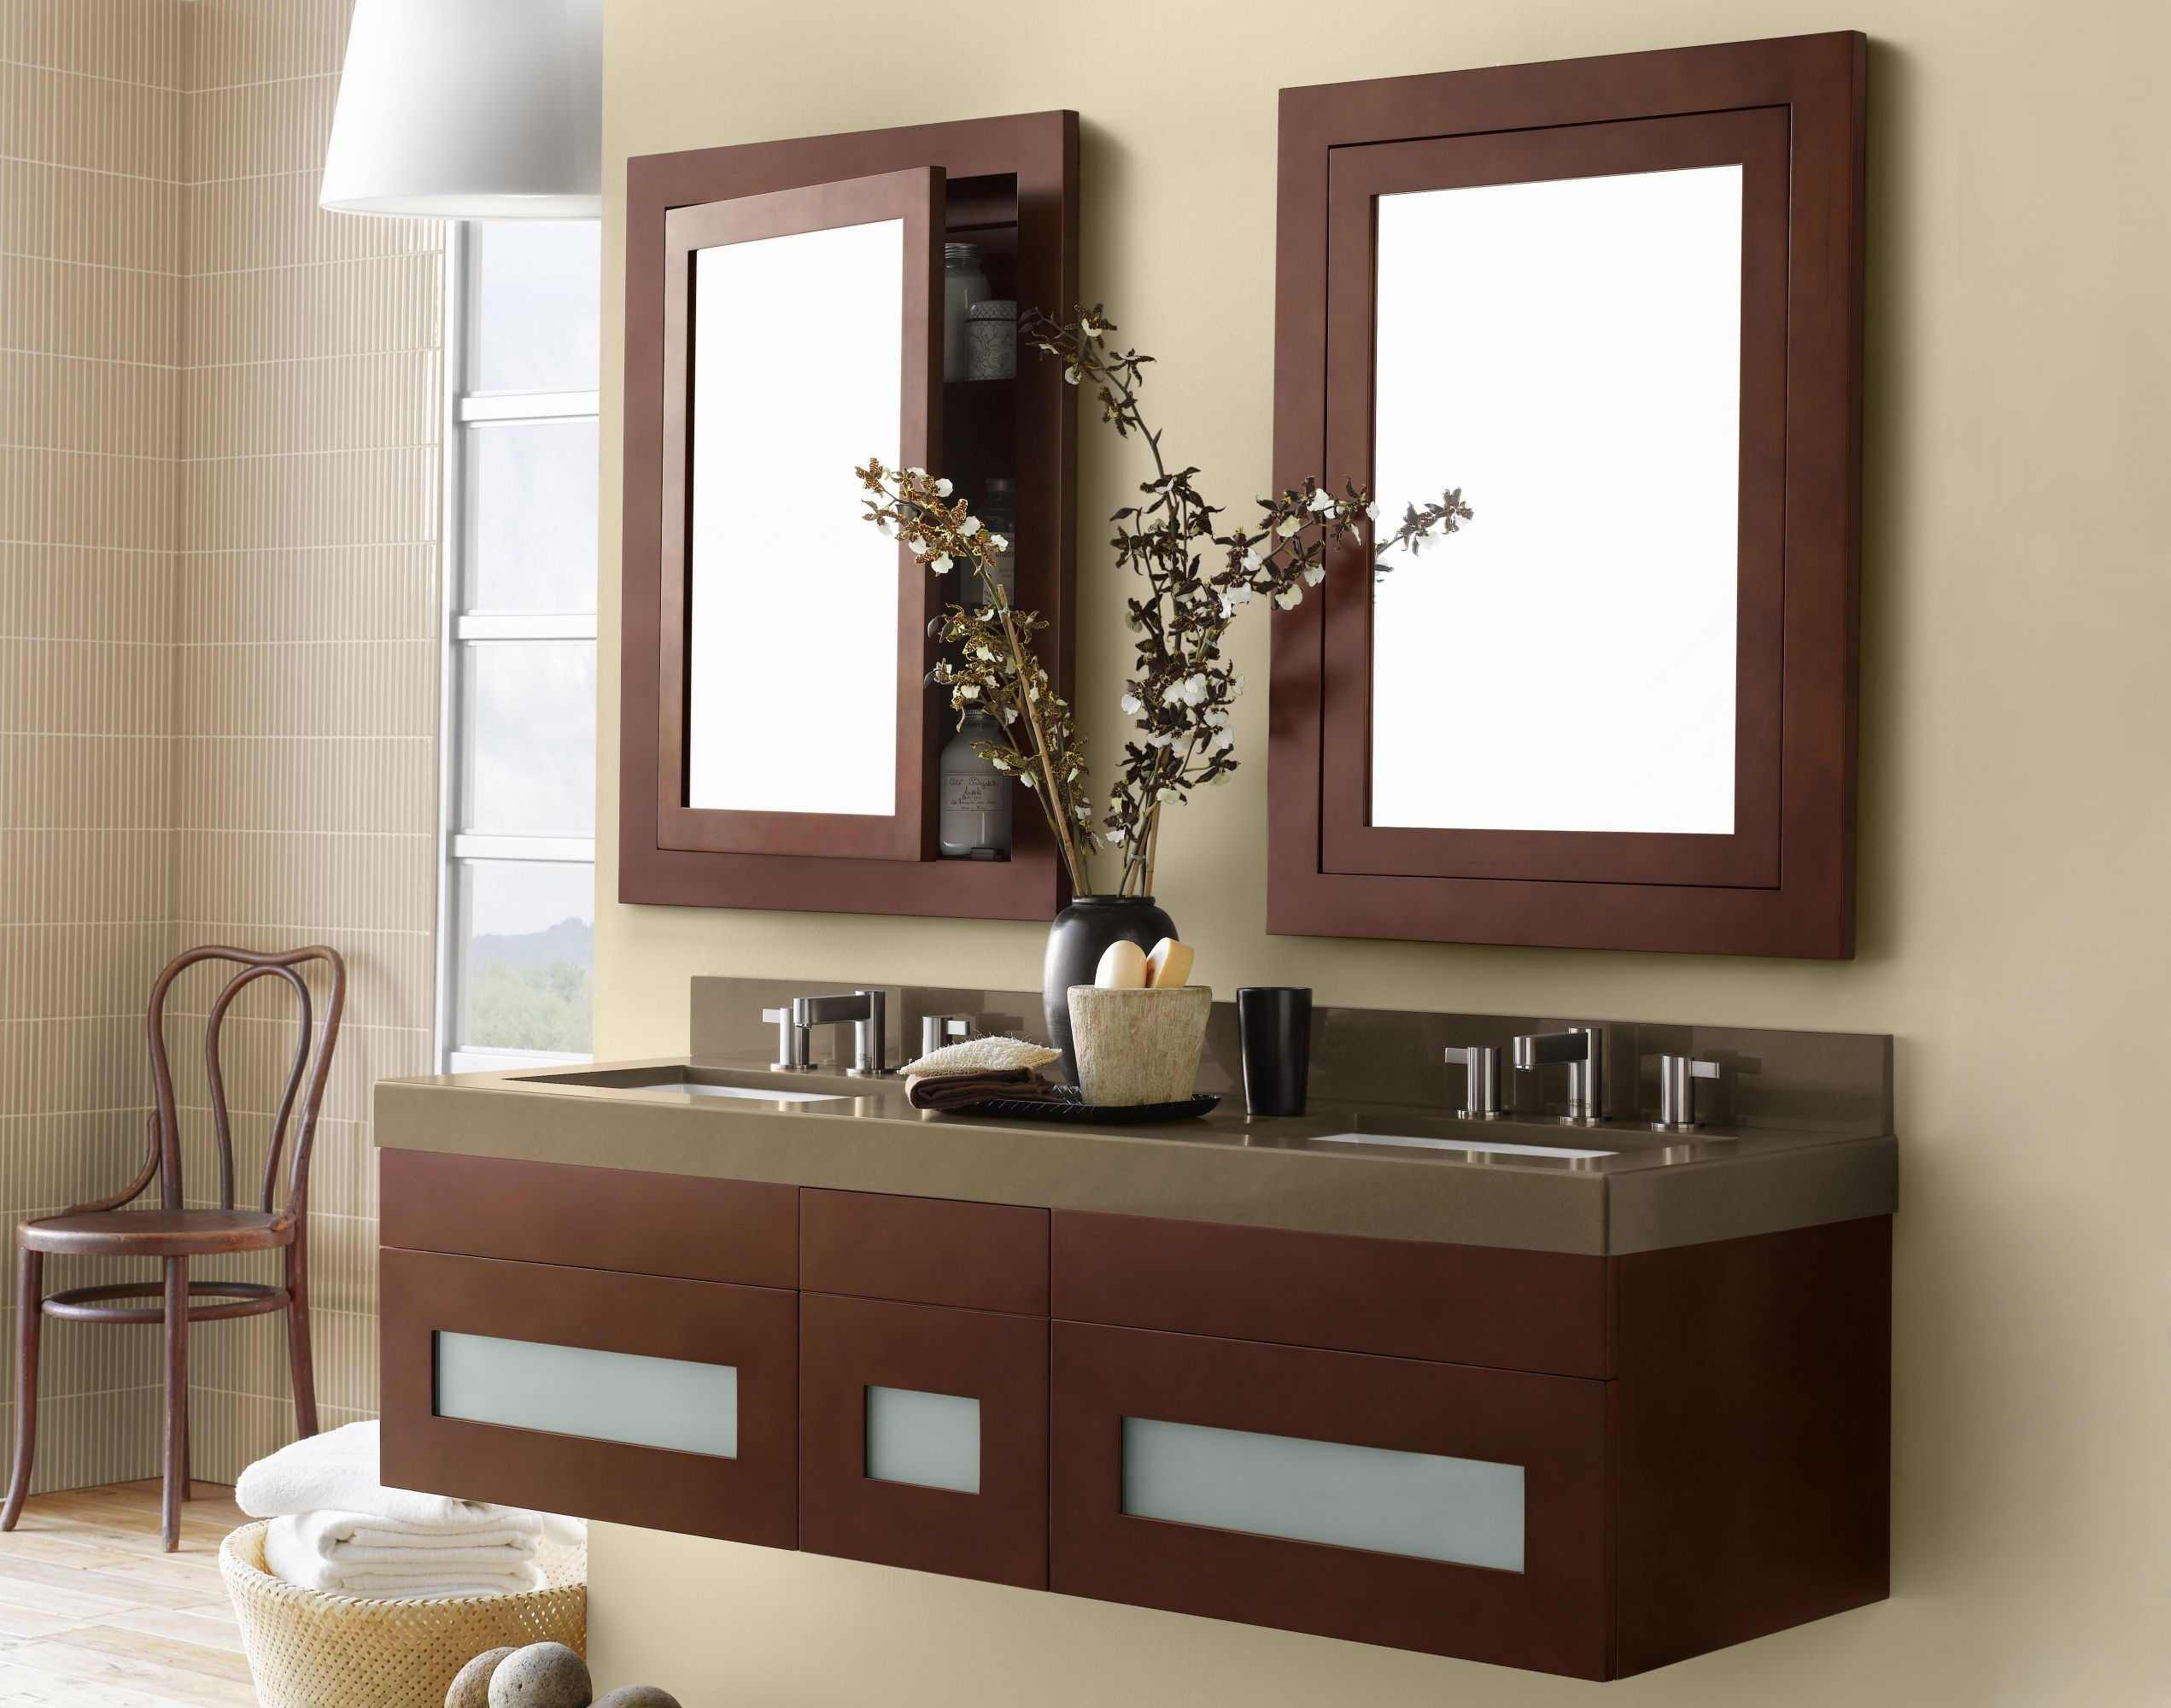 Wall Mounted Bathroom Vanity Cabinet Only